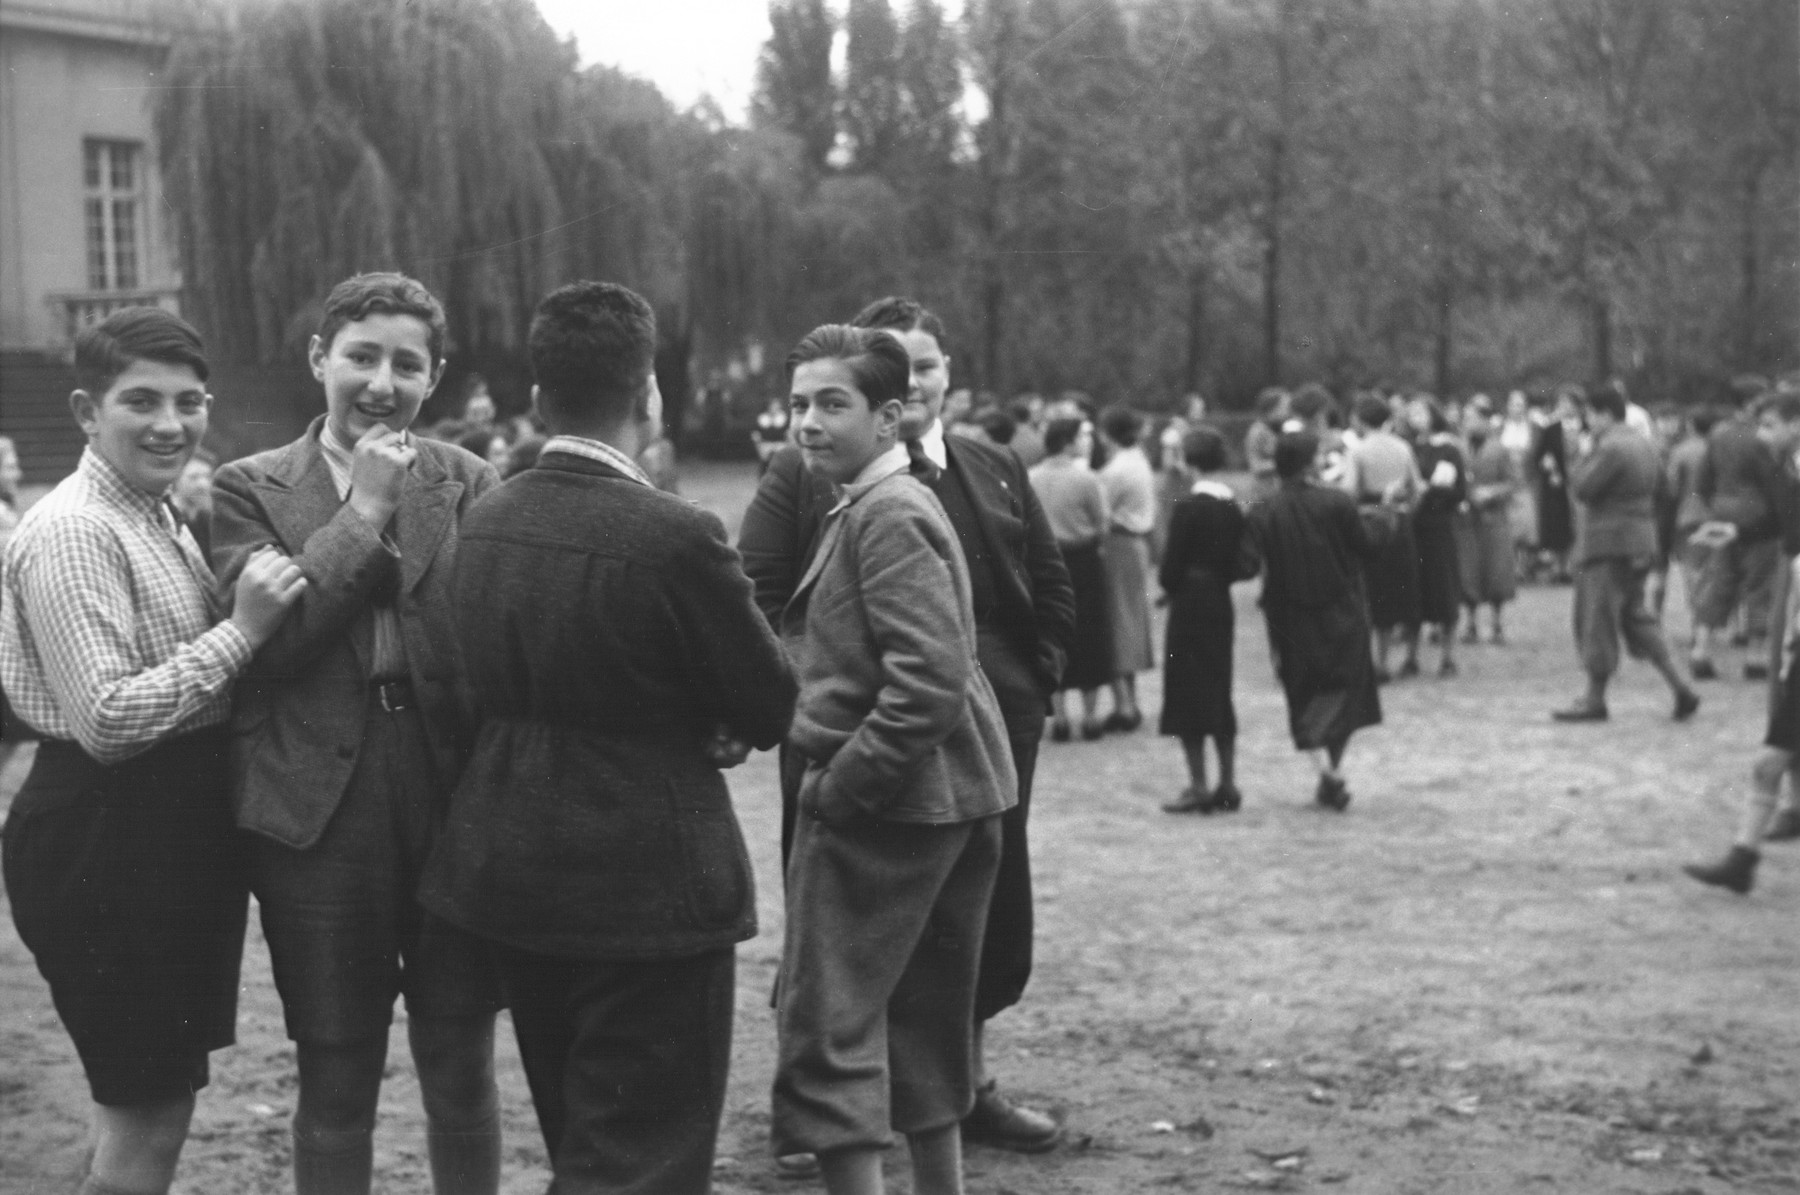 A group of teenage boys stands outside on the grounds of the Goldschmidt Jewish private school in Berlin-Grunewald.